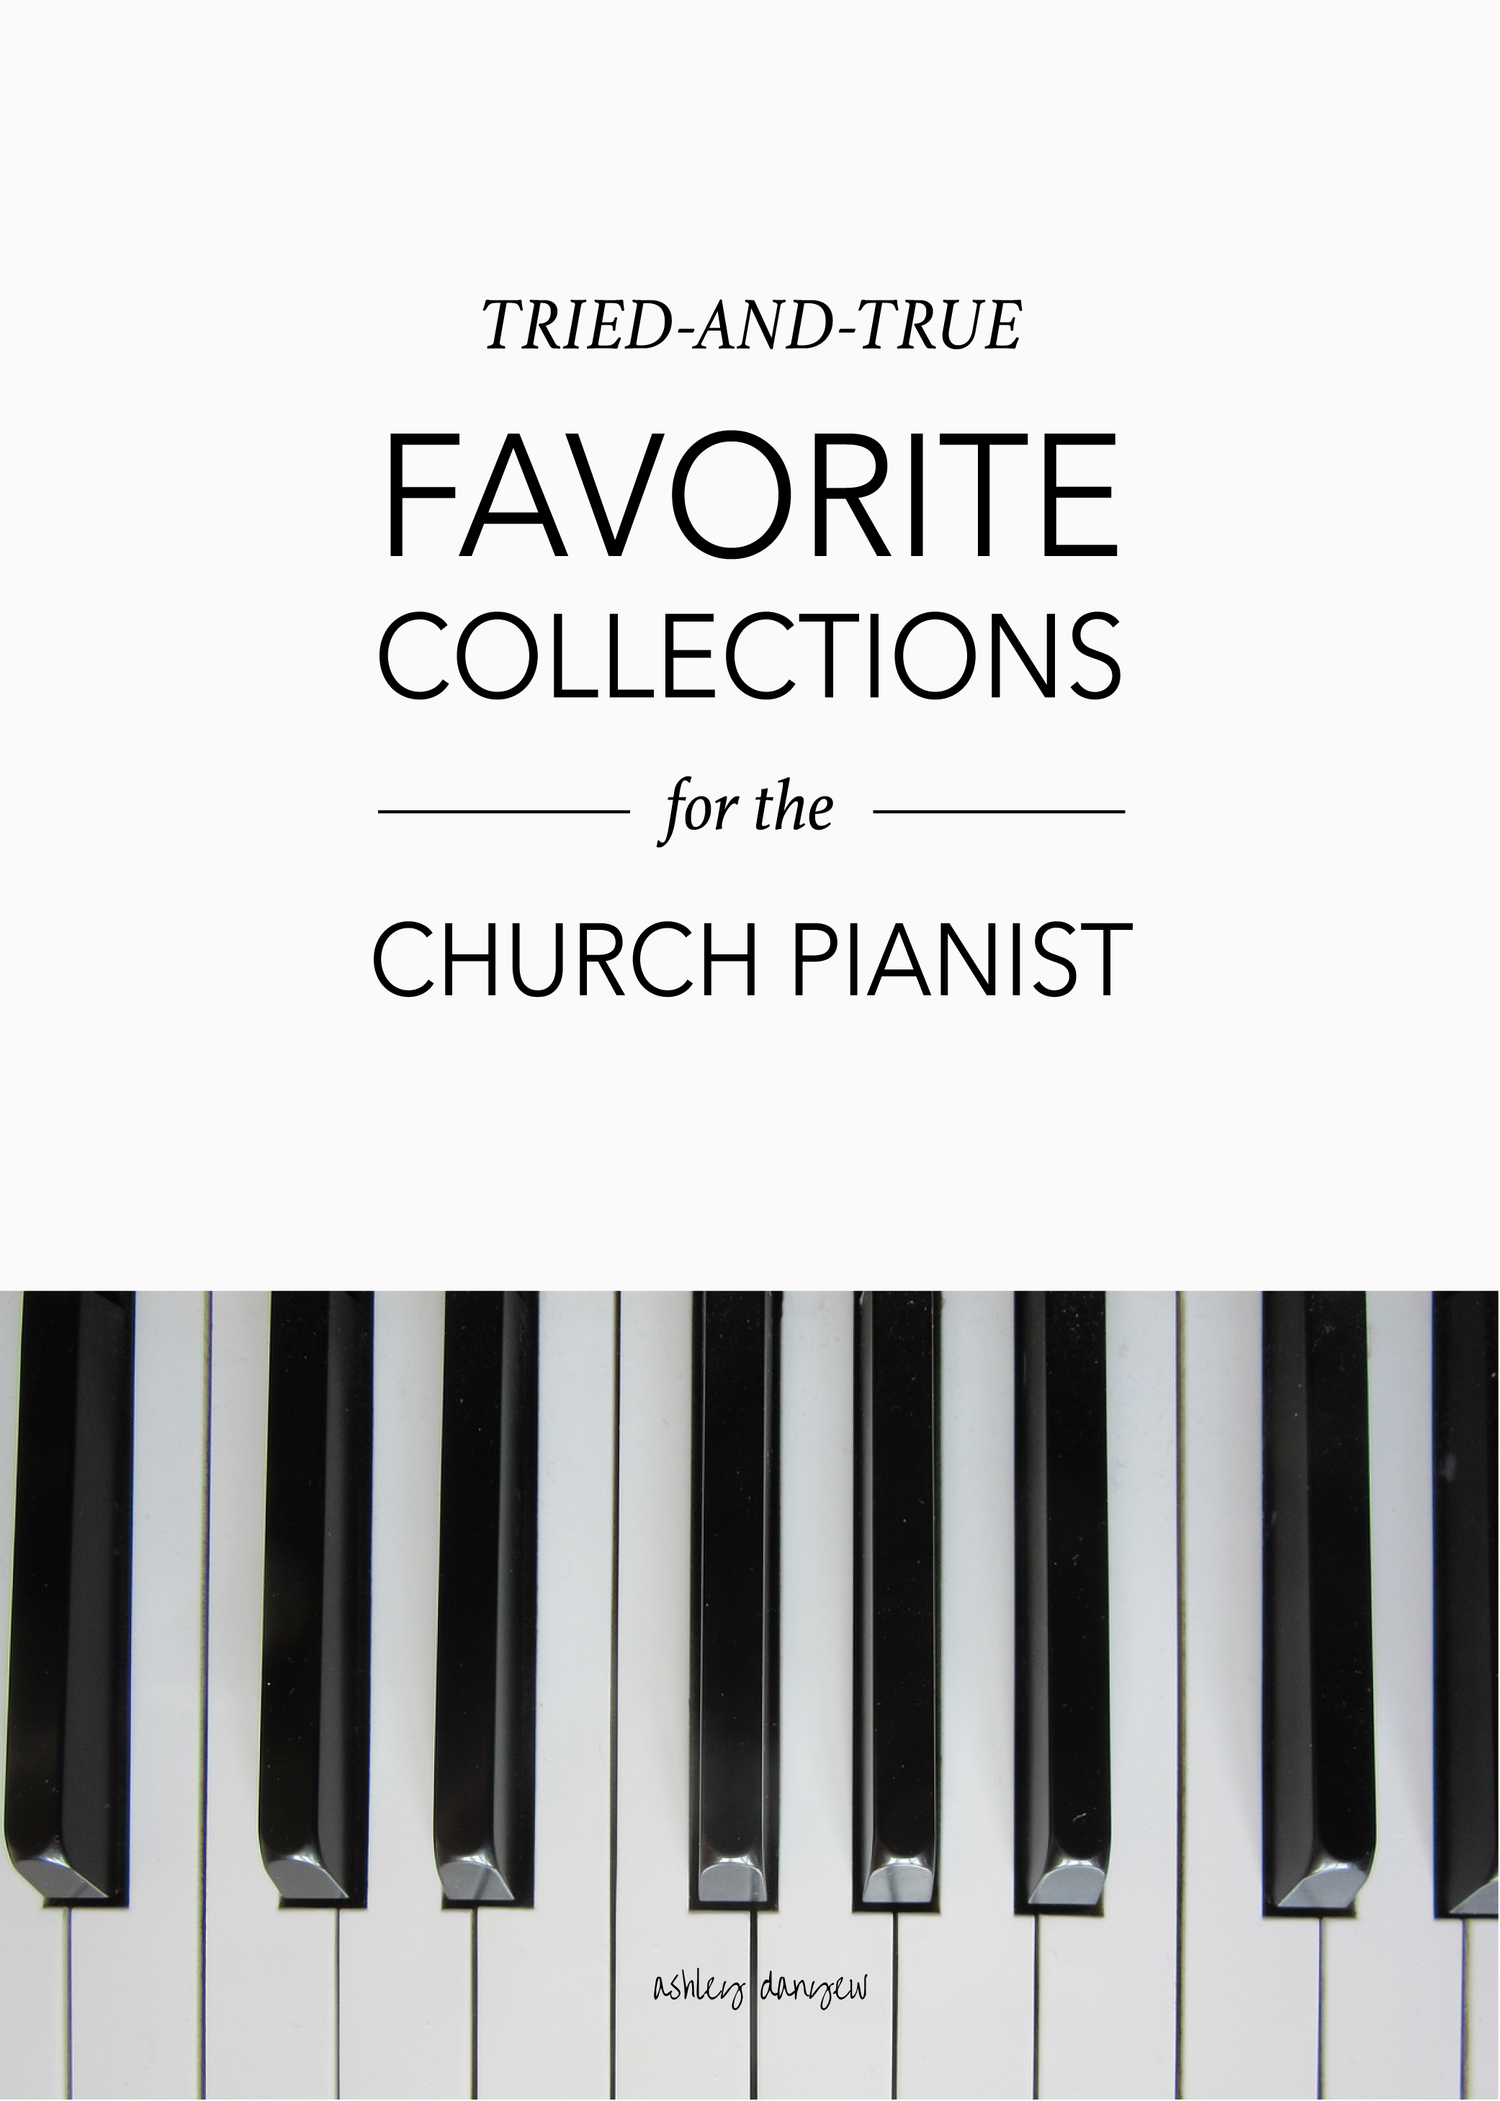 Tried-and-True Favorite Collections for the Church Pianist